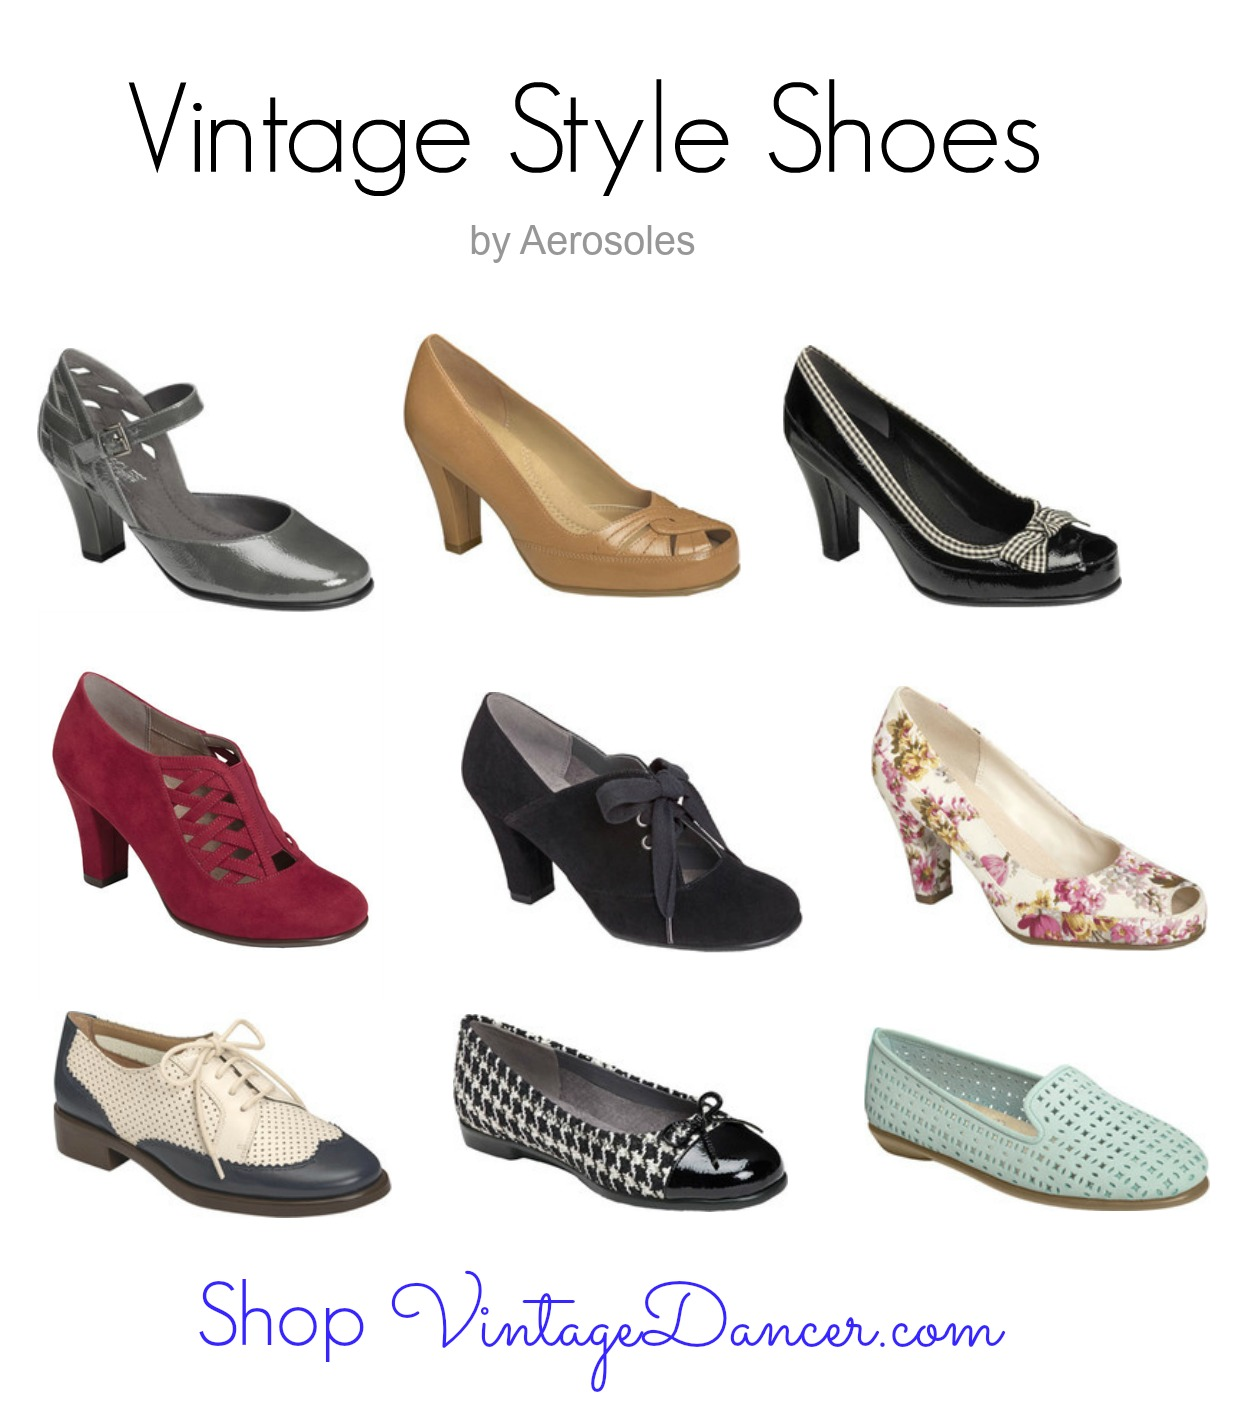 Vintage Style Shoes by Aerosoles